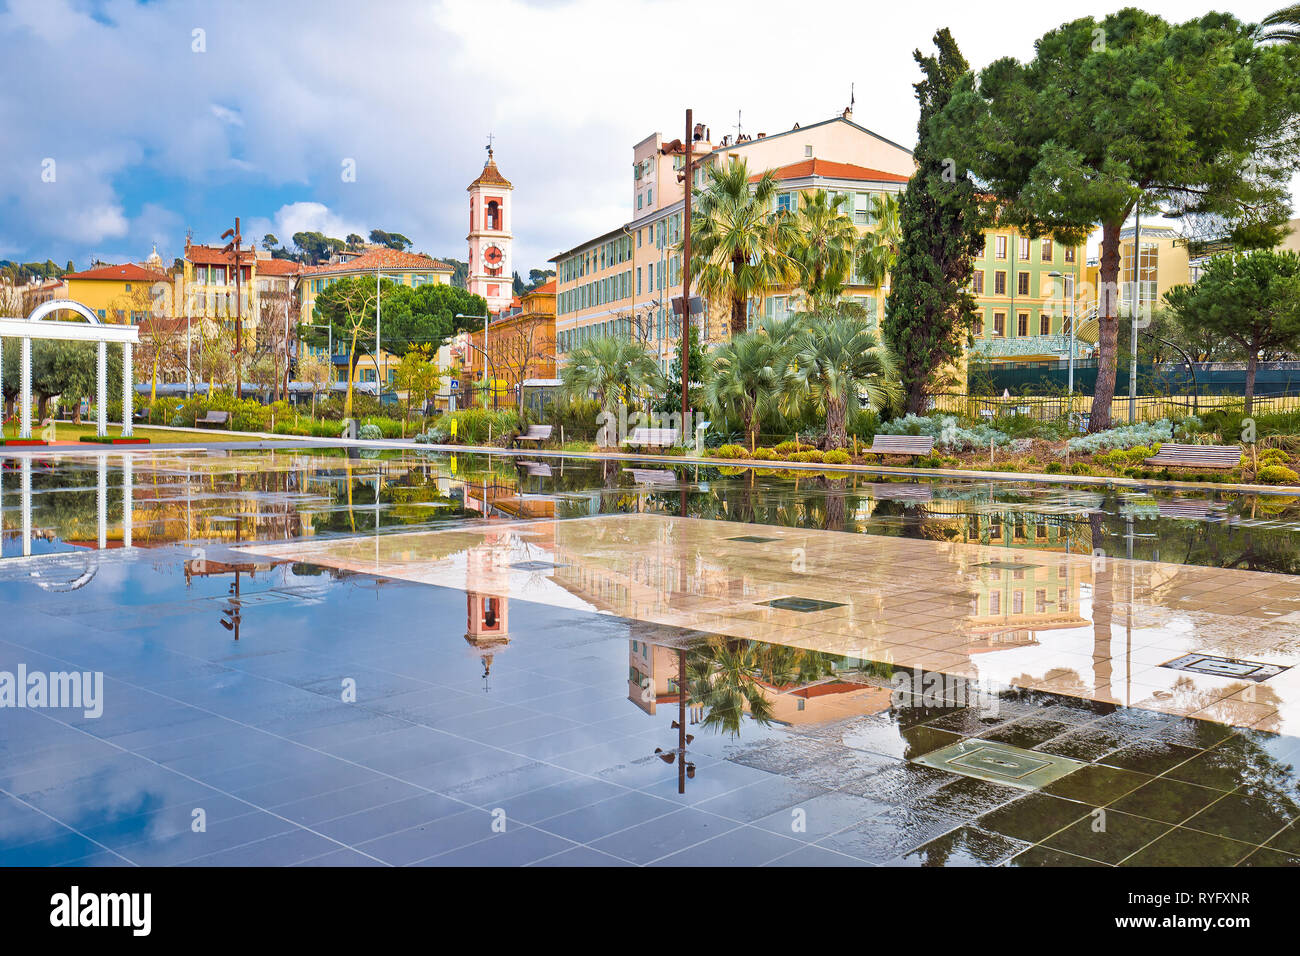 Nice cityscape and park fountain mirror view, Alpes-Maritimes region of France Stock Photo